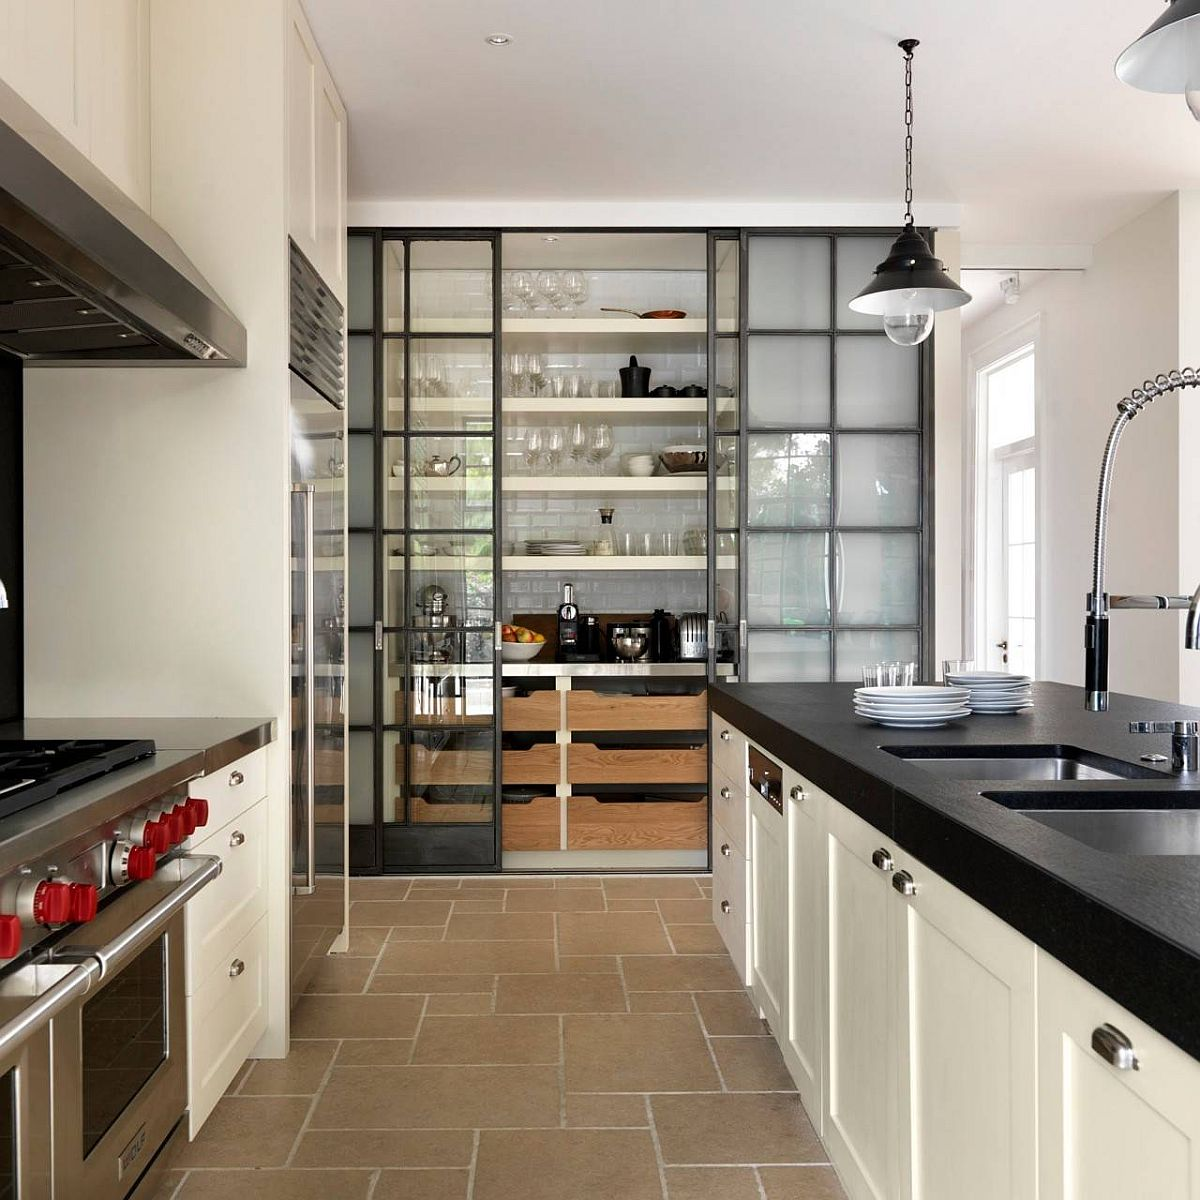 Pantry inside this modern Sydney kitchen has an understated industrial appeal about it